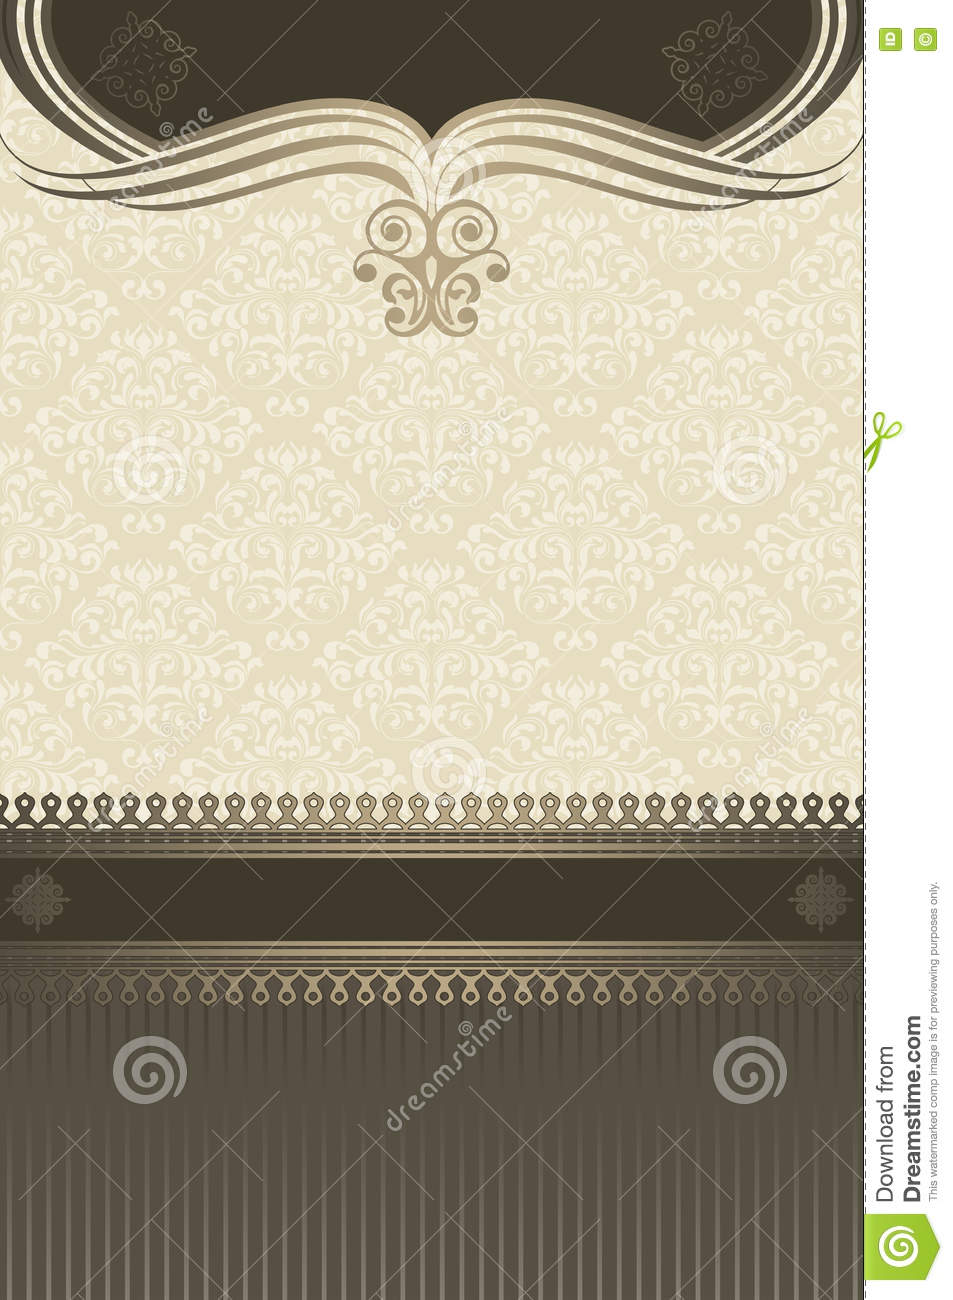 Old Fashioned Book Cover Design ~ Decorative vintage background with elegant border royalty